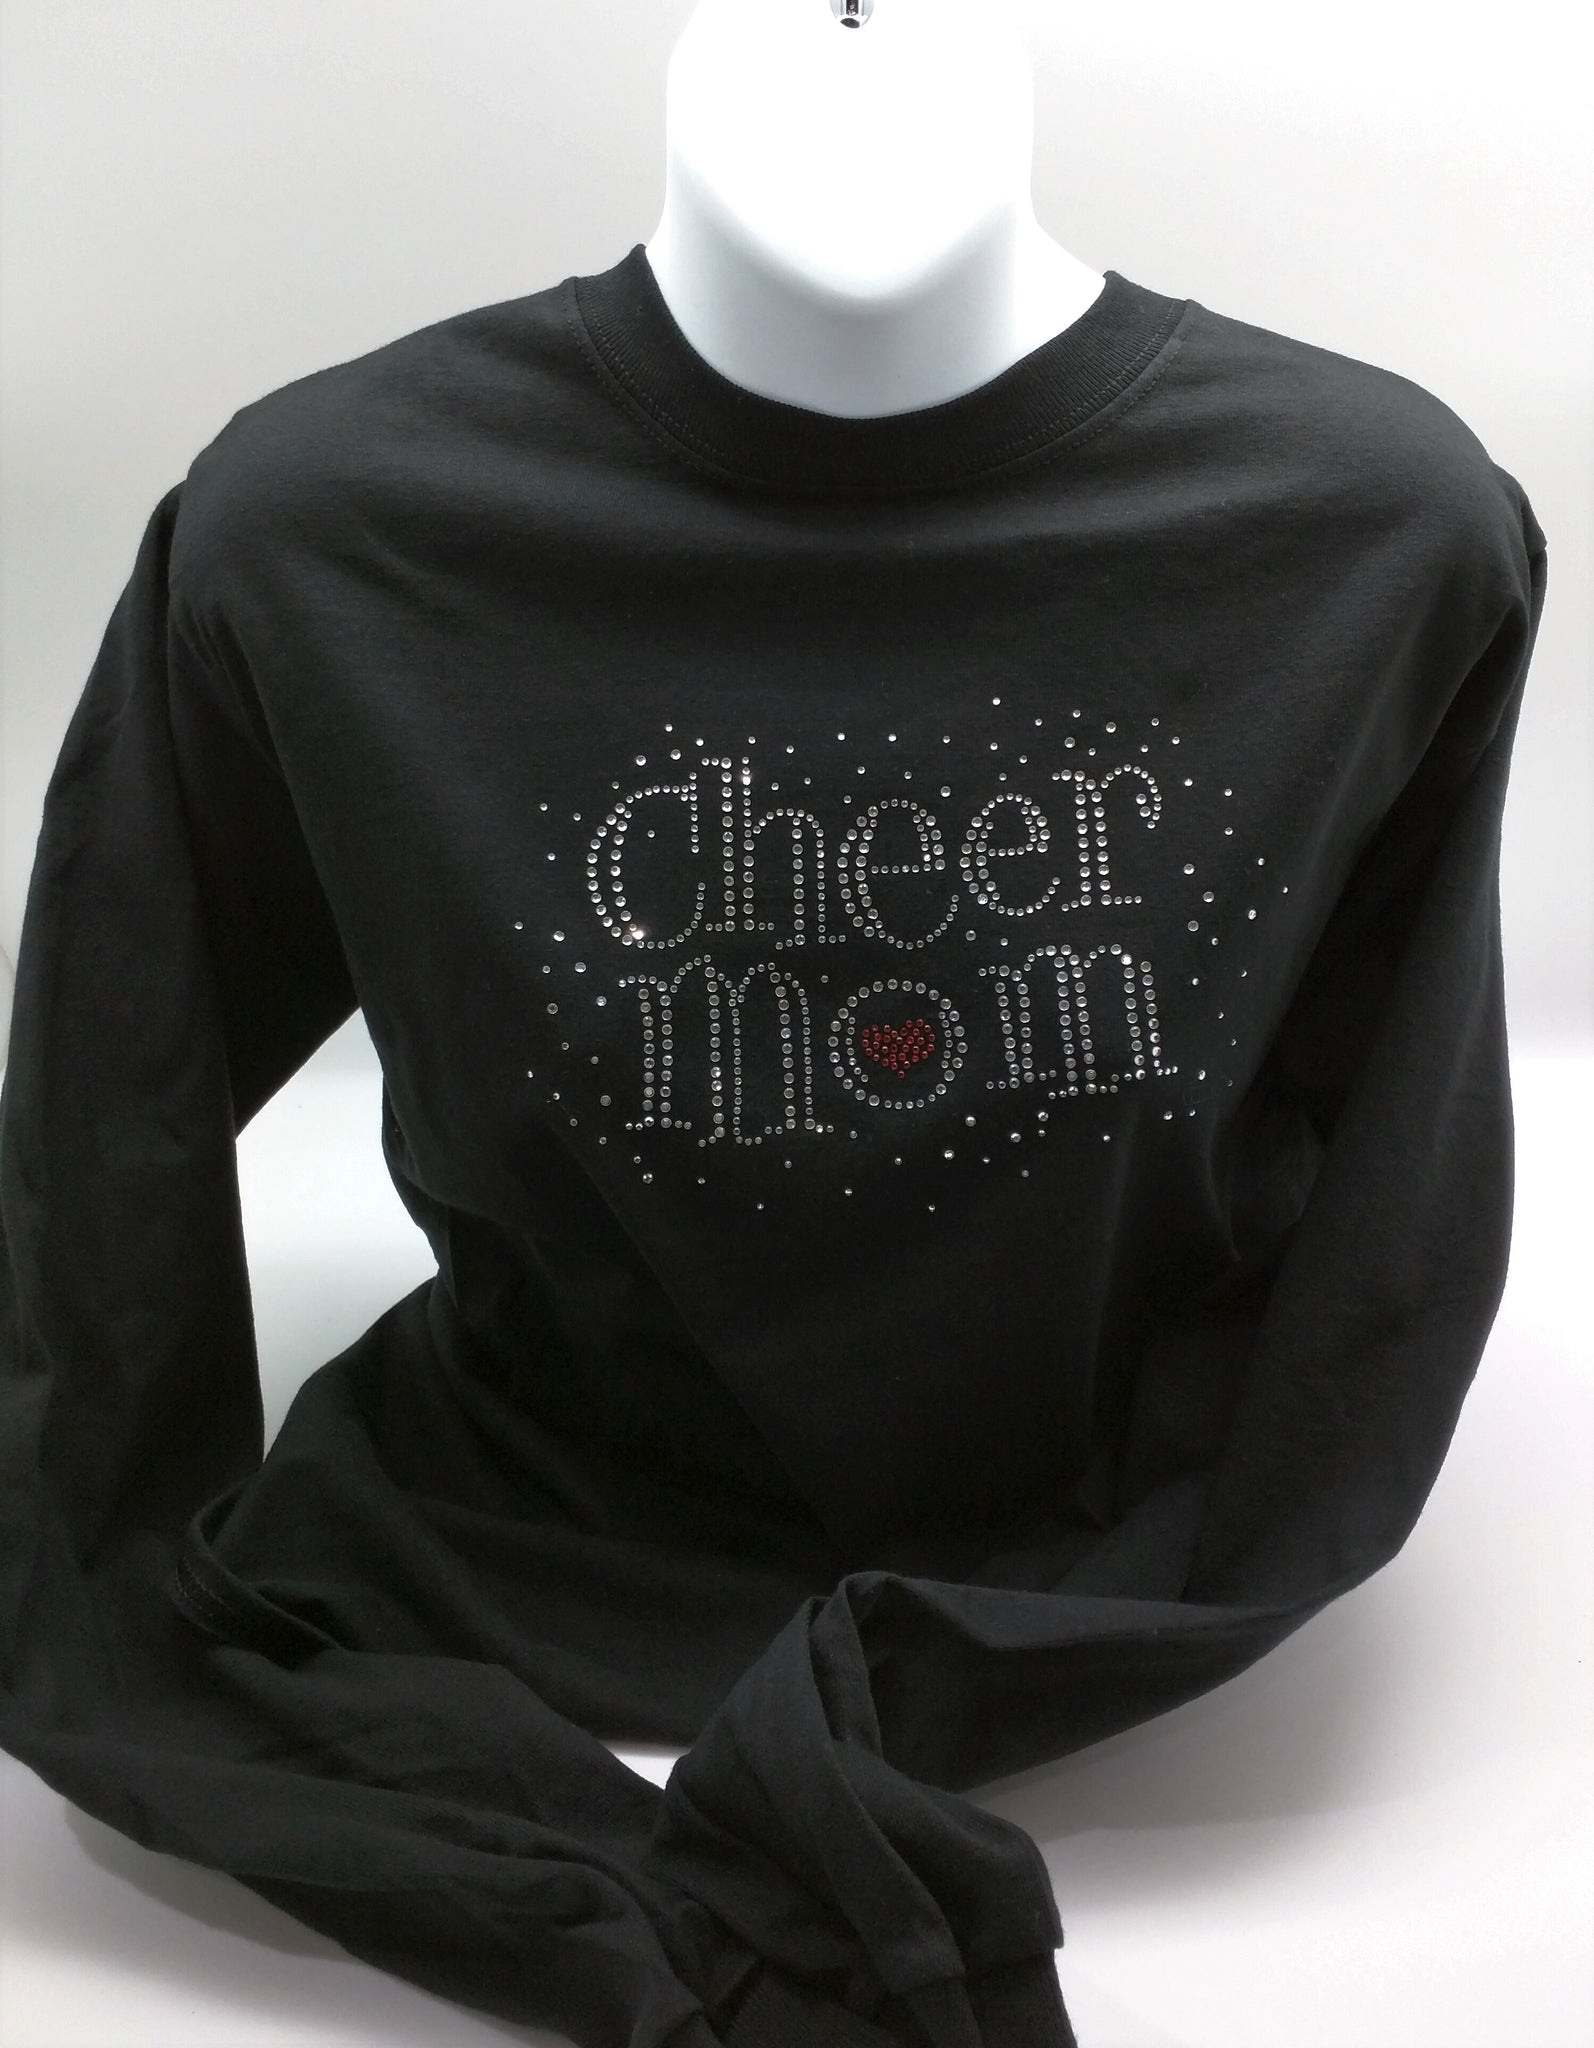 Cheer Mom with heart shirt